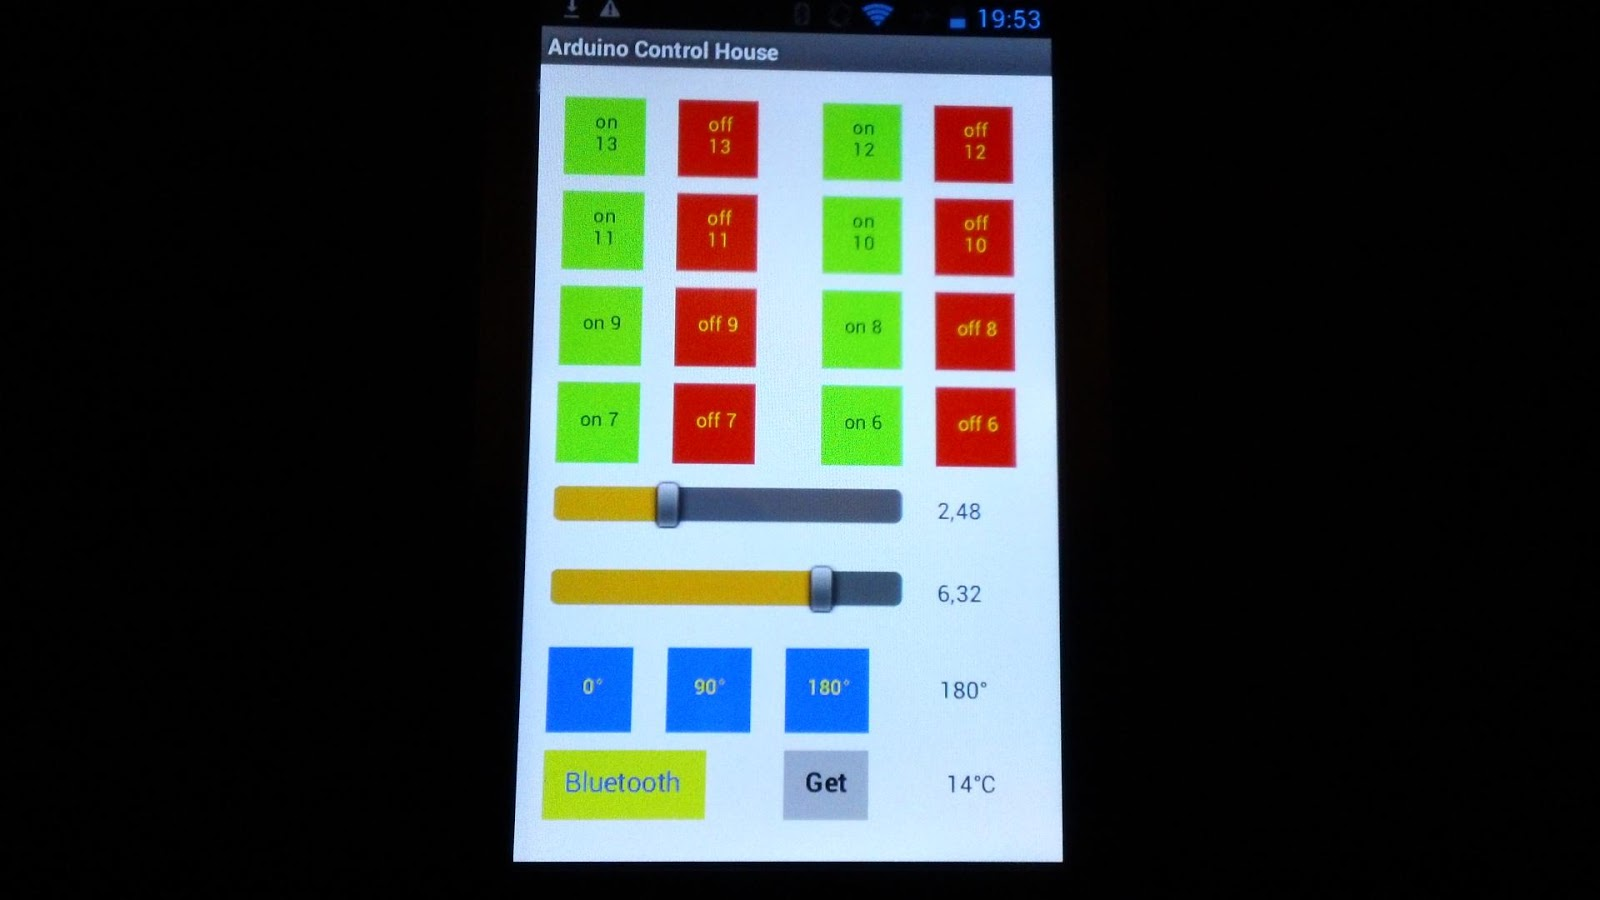 House App arduino control house - android apps on google play